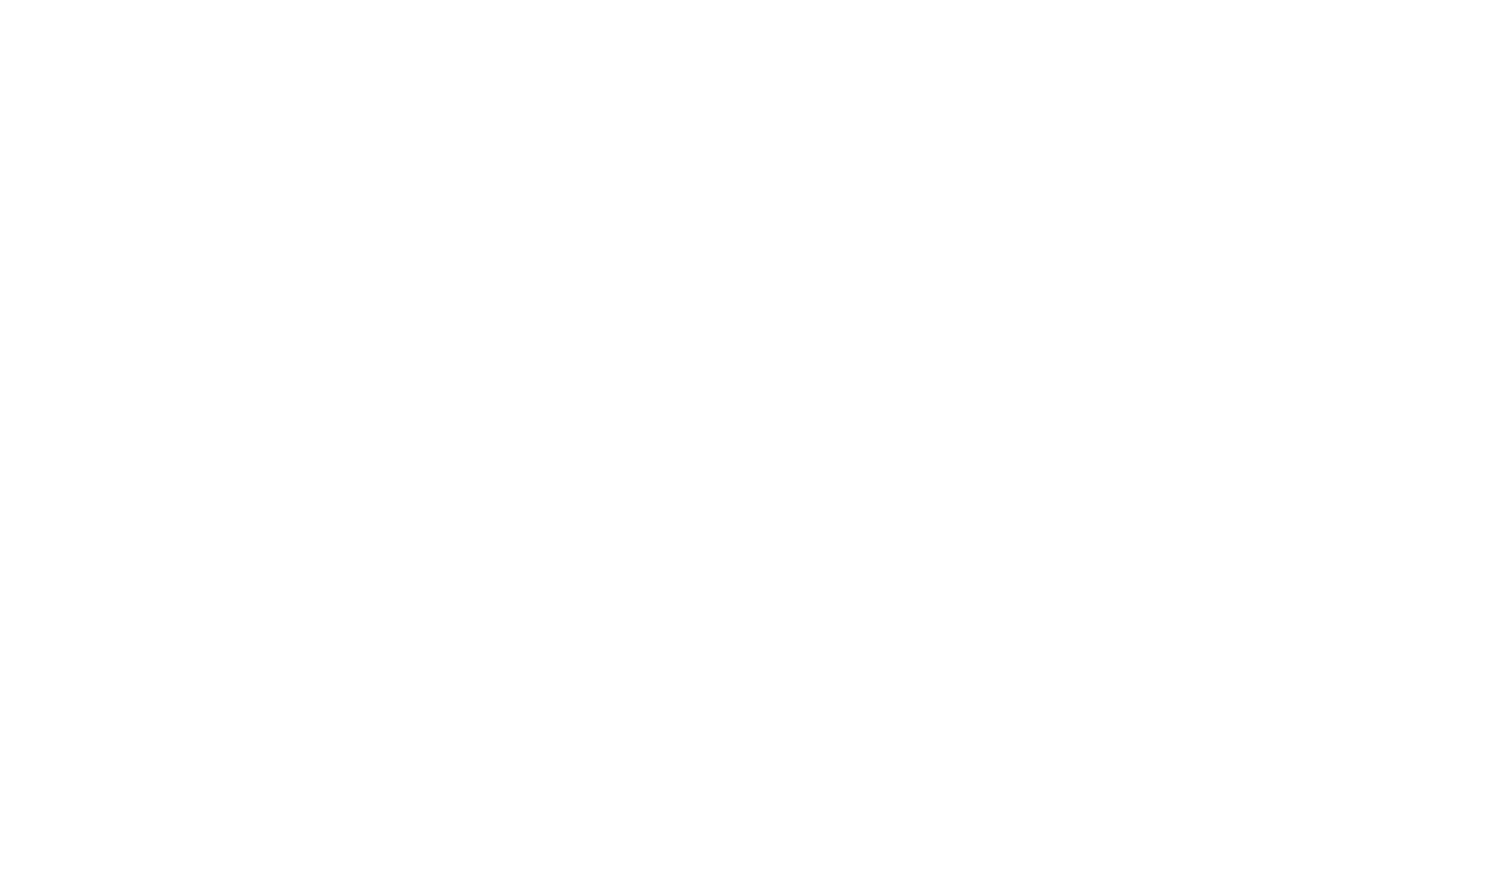 Society of Light-saber Duelists UNLV